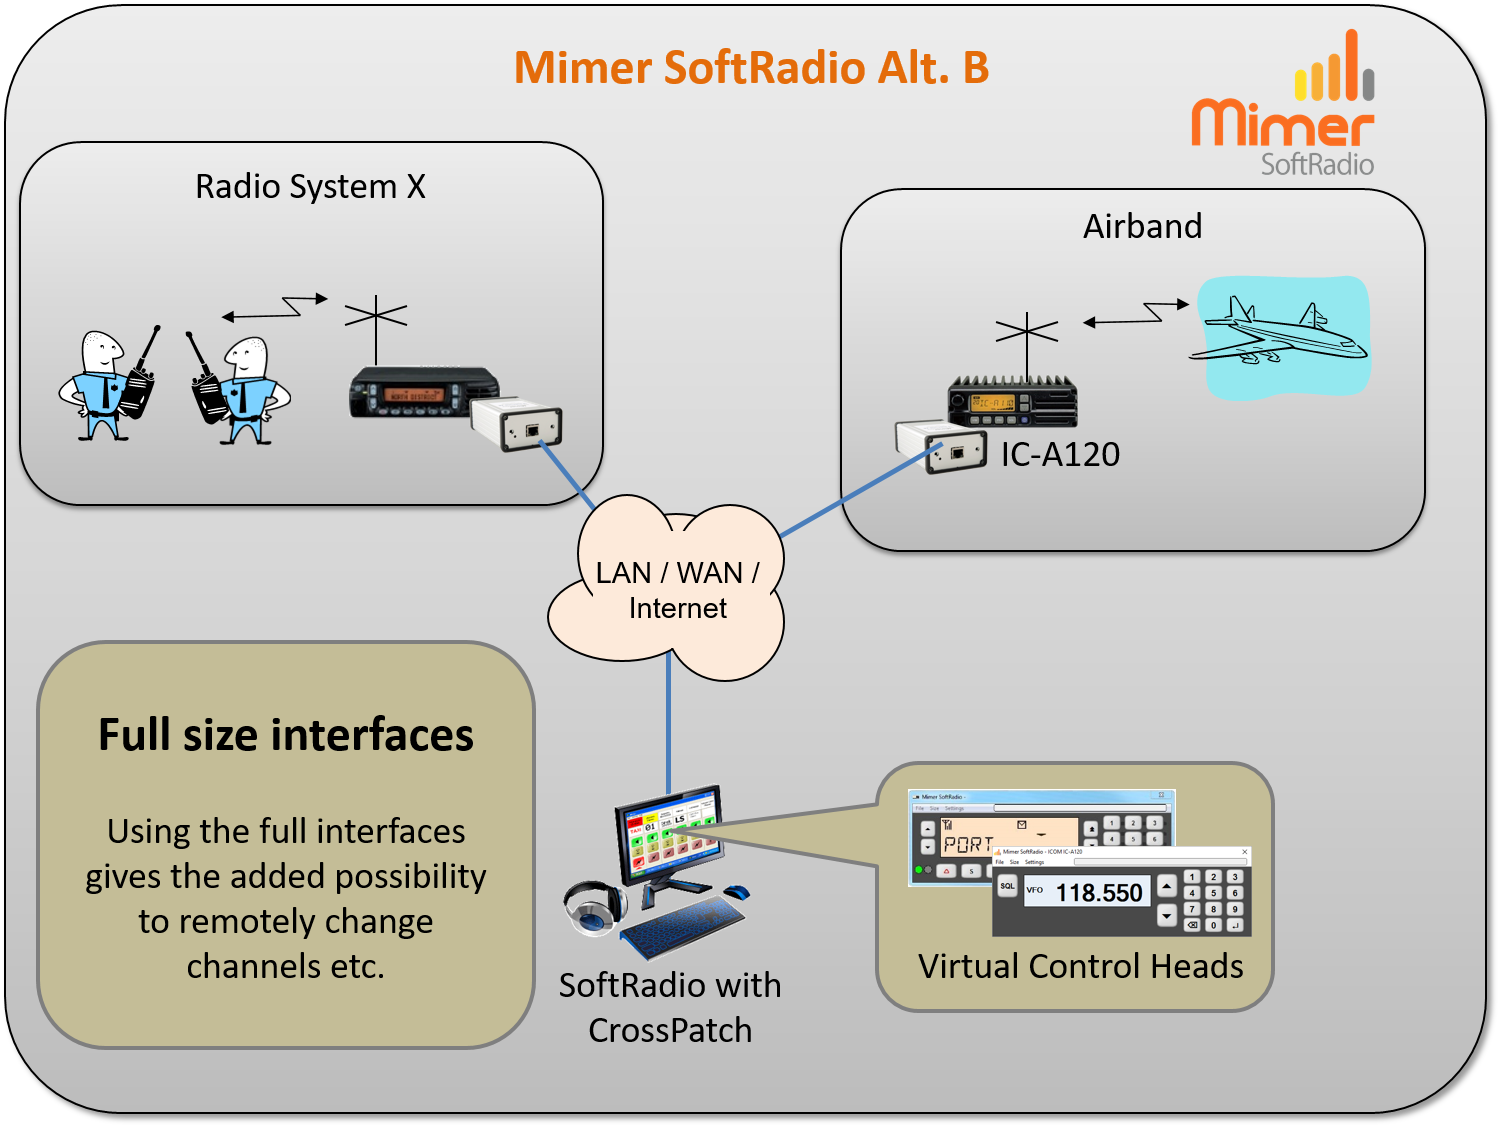 CrossPatch using a Mimer SoftRadio solution including remote channel change and more